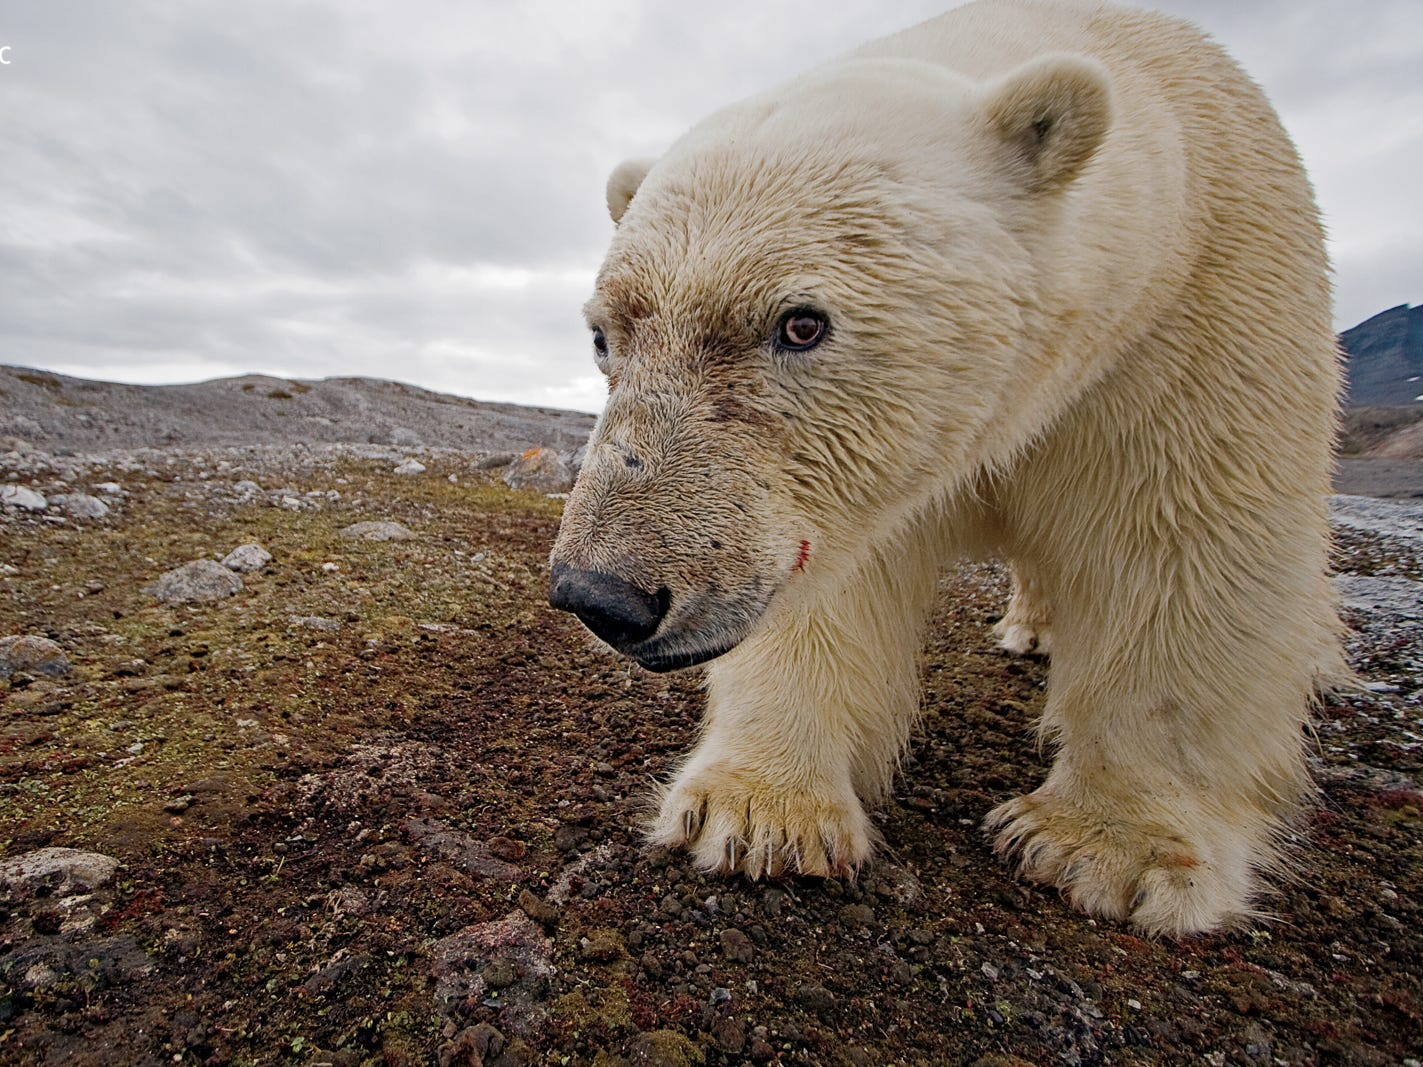 A male polar bear taking its image with a camera trap. The exhibition is organized and traveled by the National Geographic Society